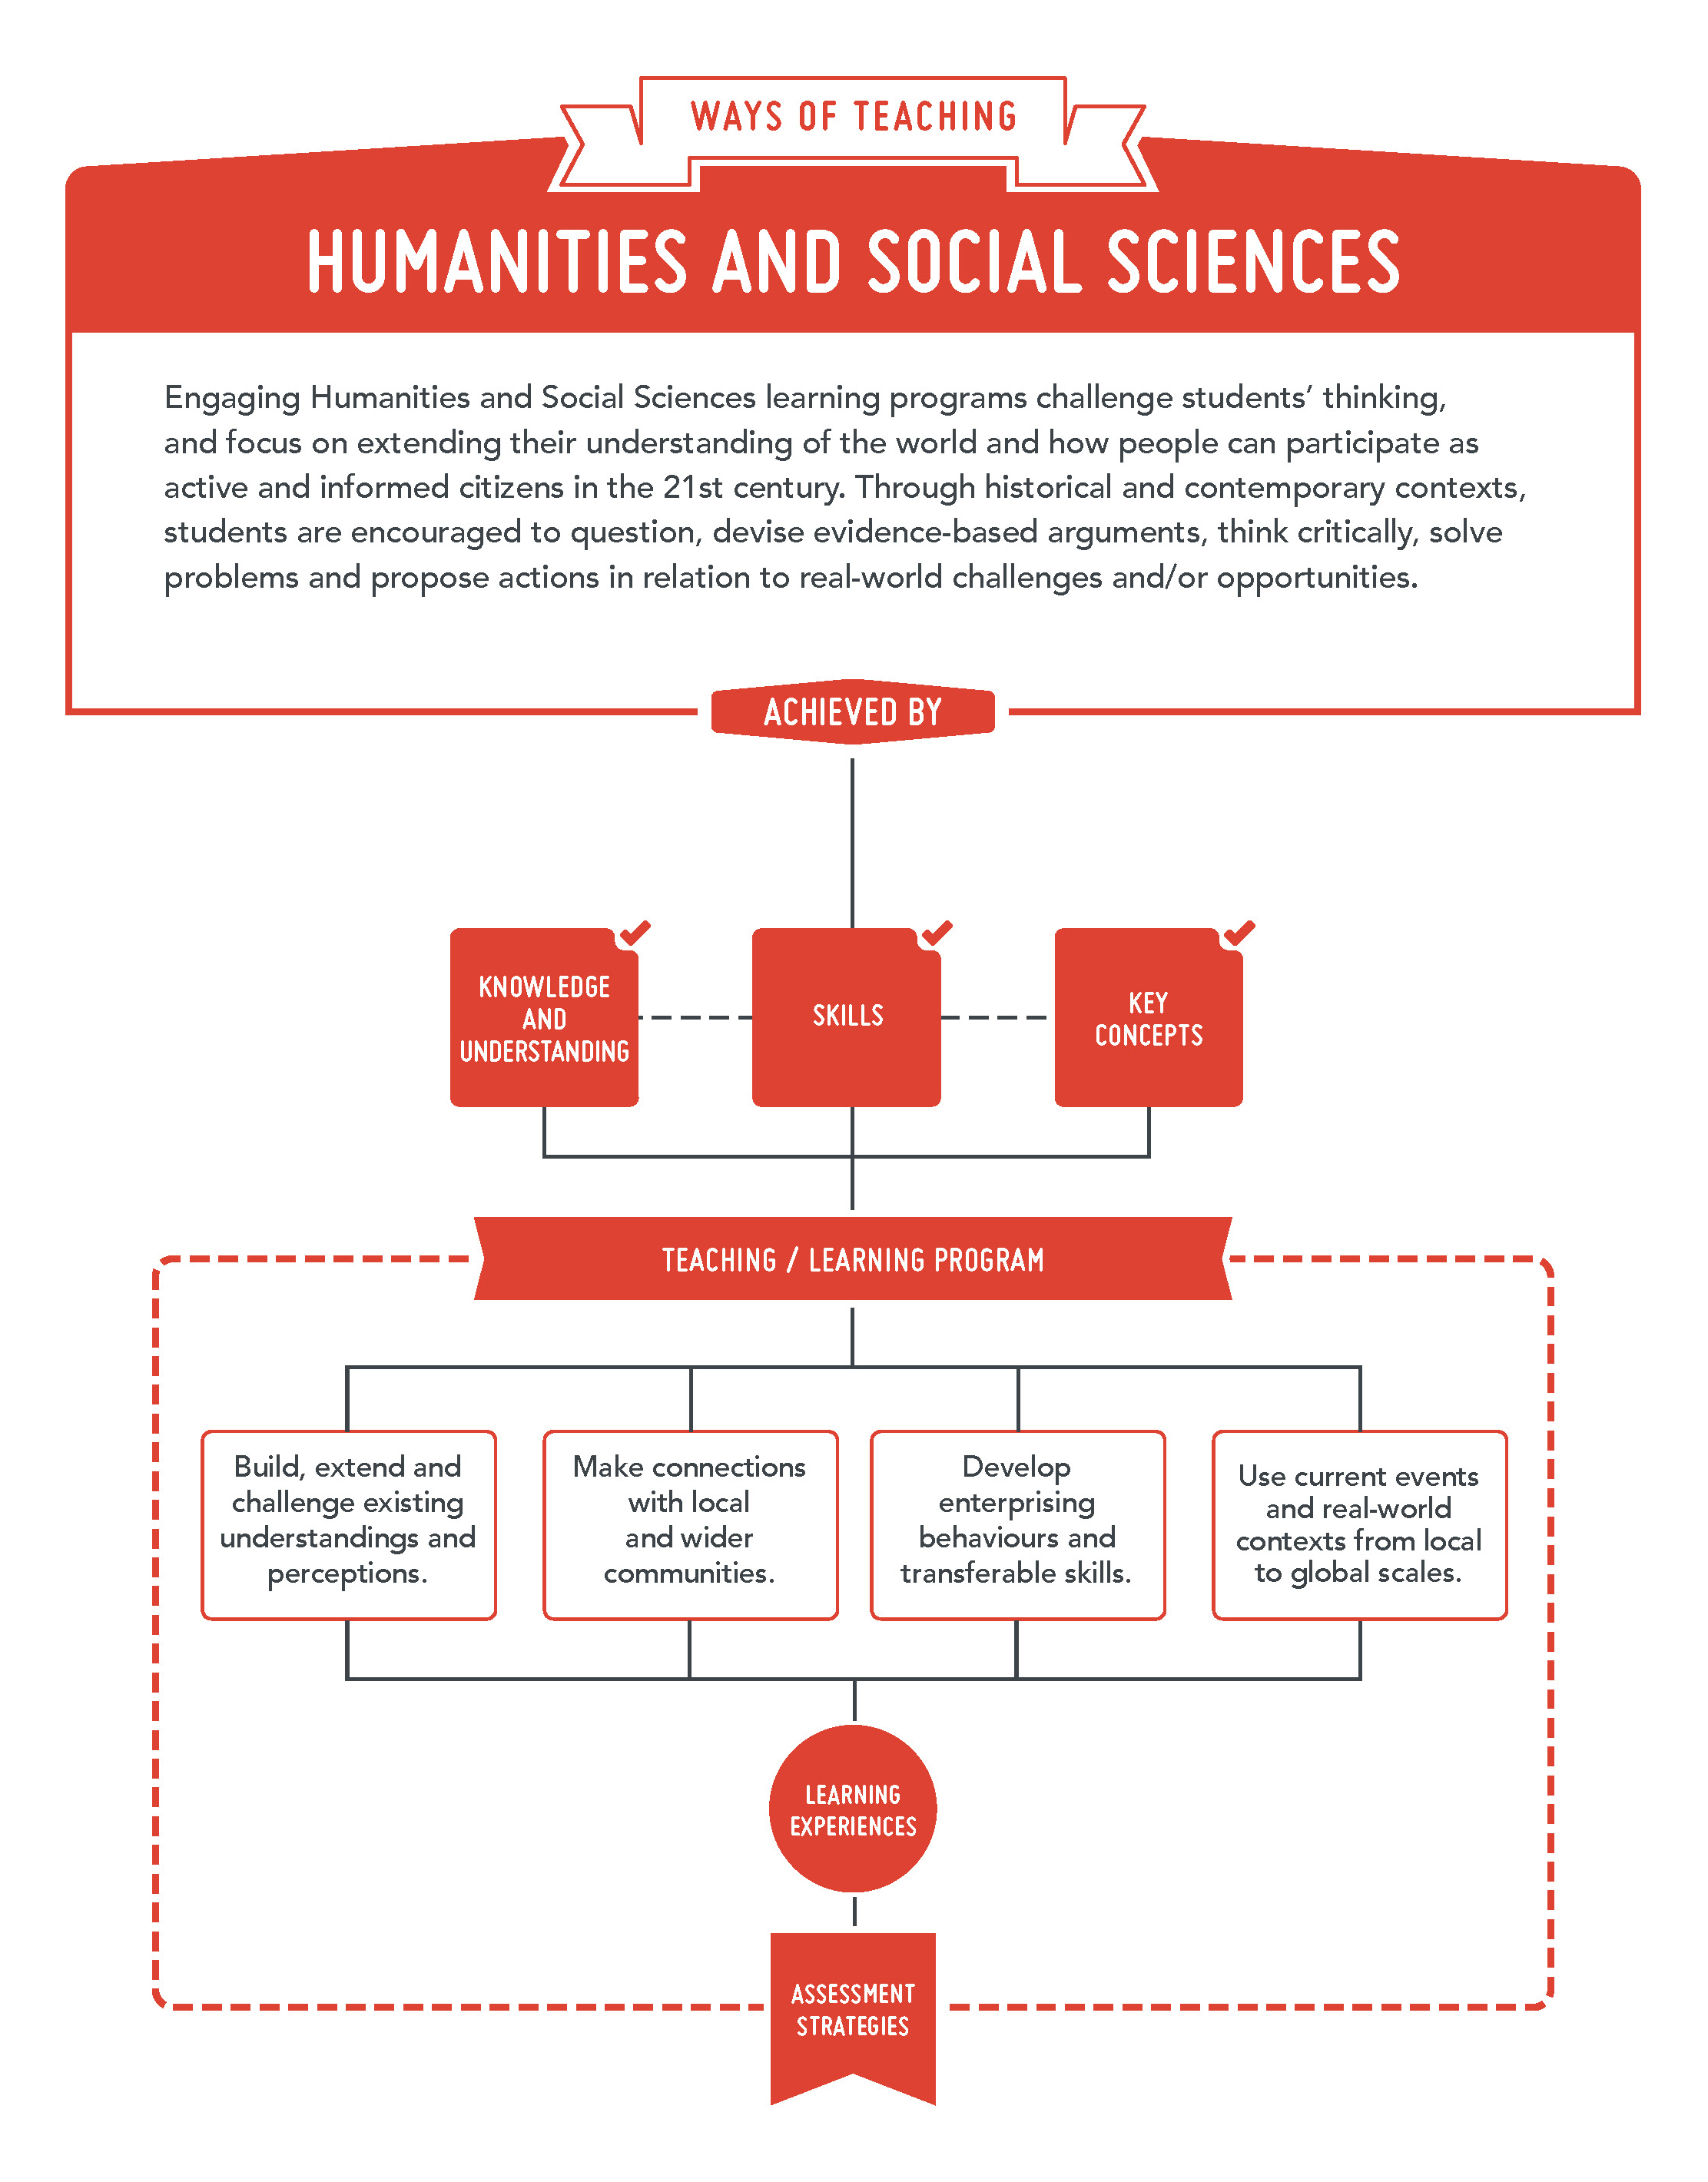 Humanities and Social Sciences - Ways of teaching